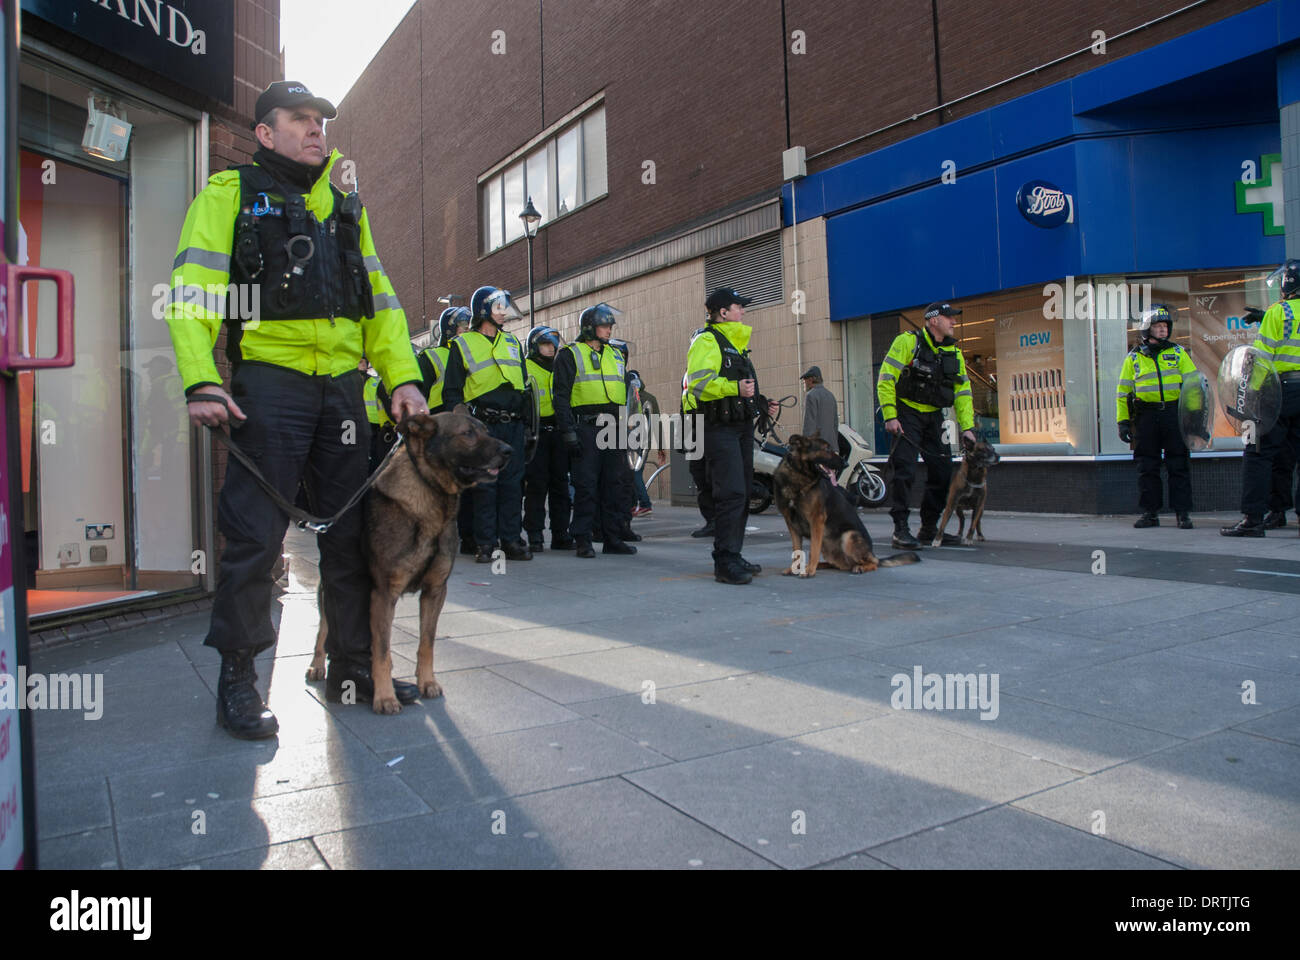 Slough, UK . 01st Feb, 2014. Police in riot gear and dog handlers' cordon off a side street during an English Defence League march in Slough, United Kingdom. Credit:  Peter Manning/Alamy Live News - Stock Image